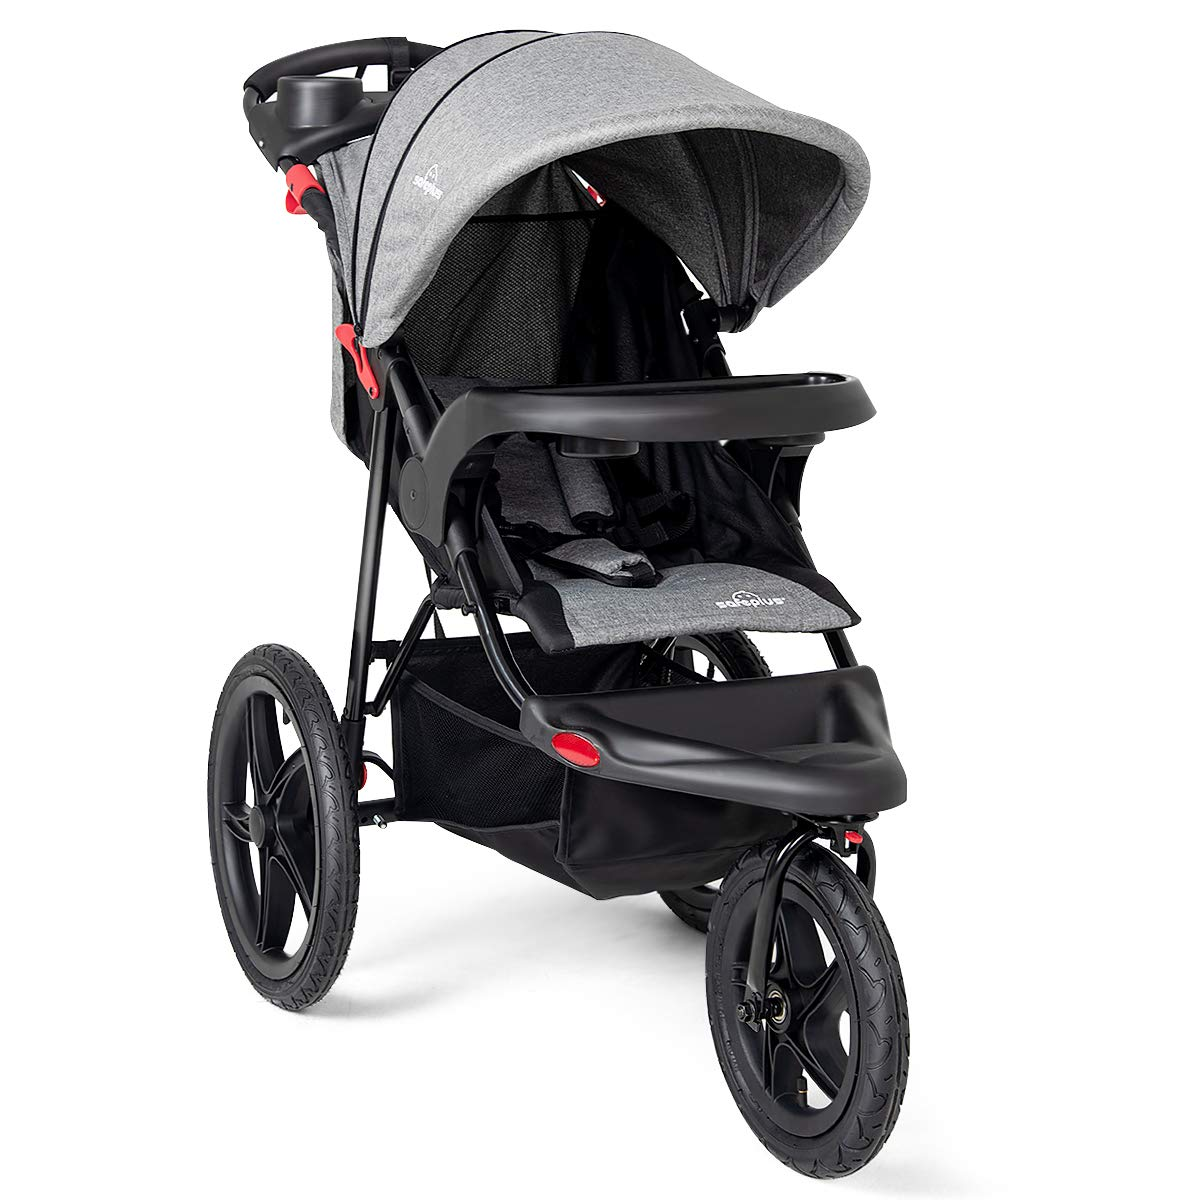 Costzon Baby Jogger Stroller Lightweight w/Cup Phone Holder (Black) FWAM-00963